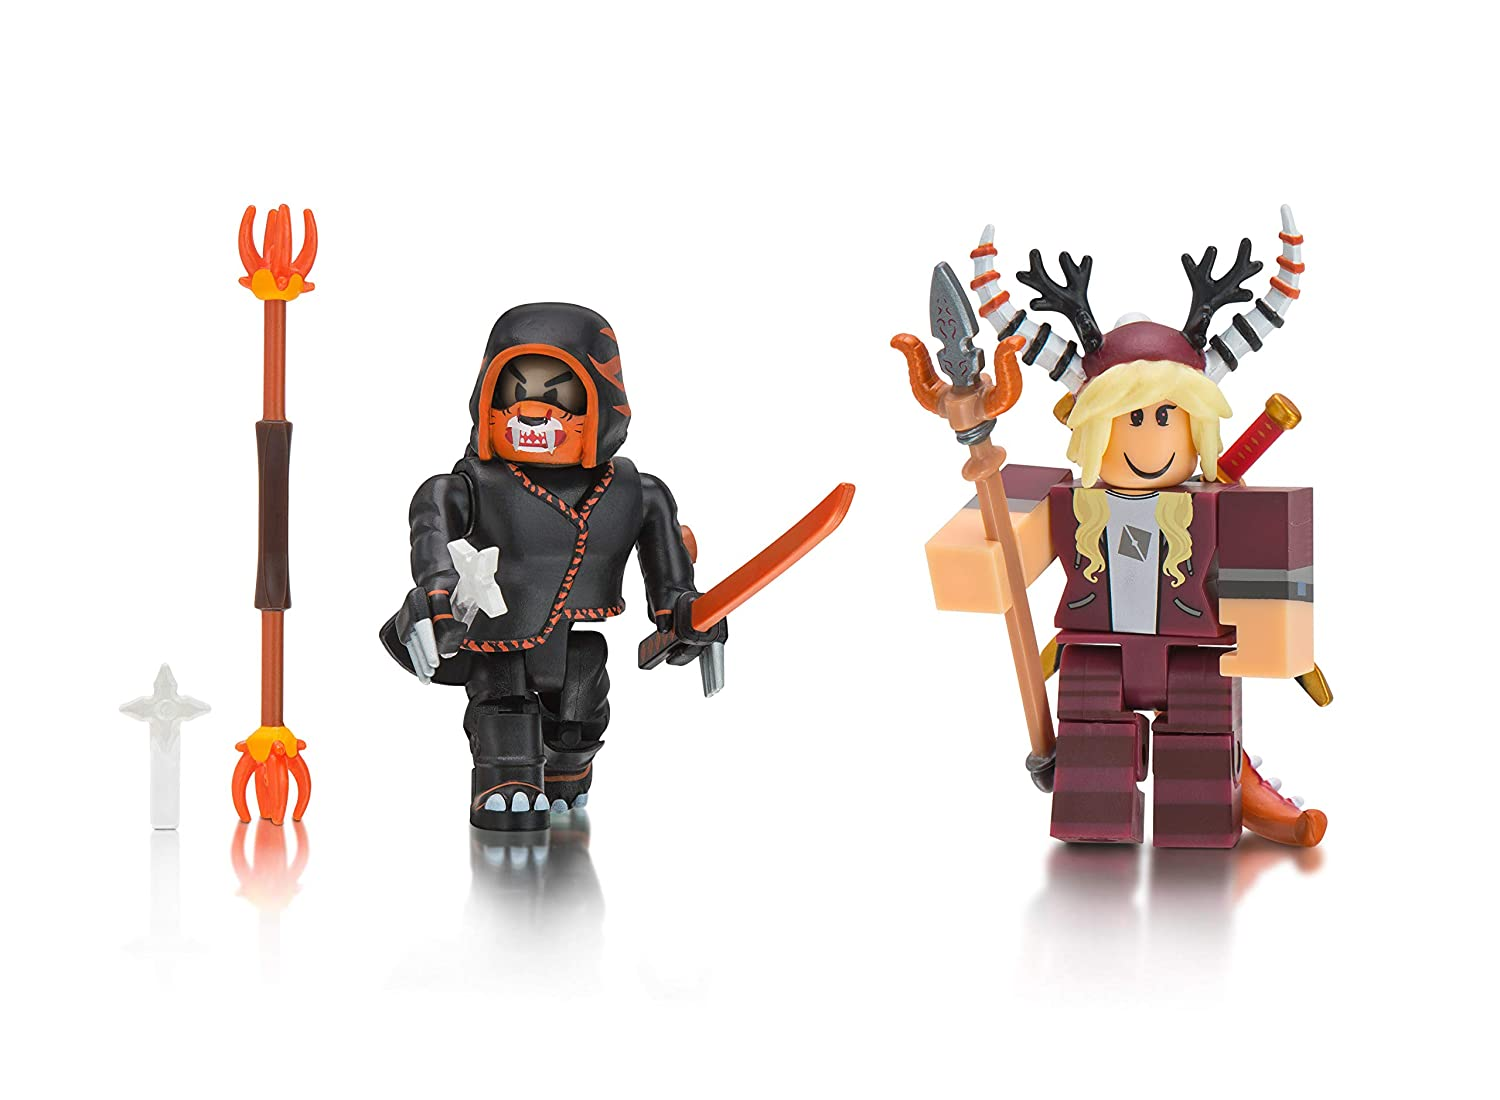 Roblox - VivaLaVixen and Tohru: The Phantom Claw (Two Figure Pack)